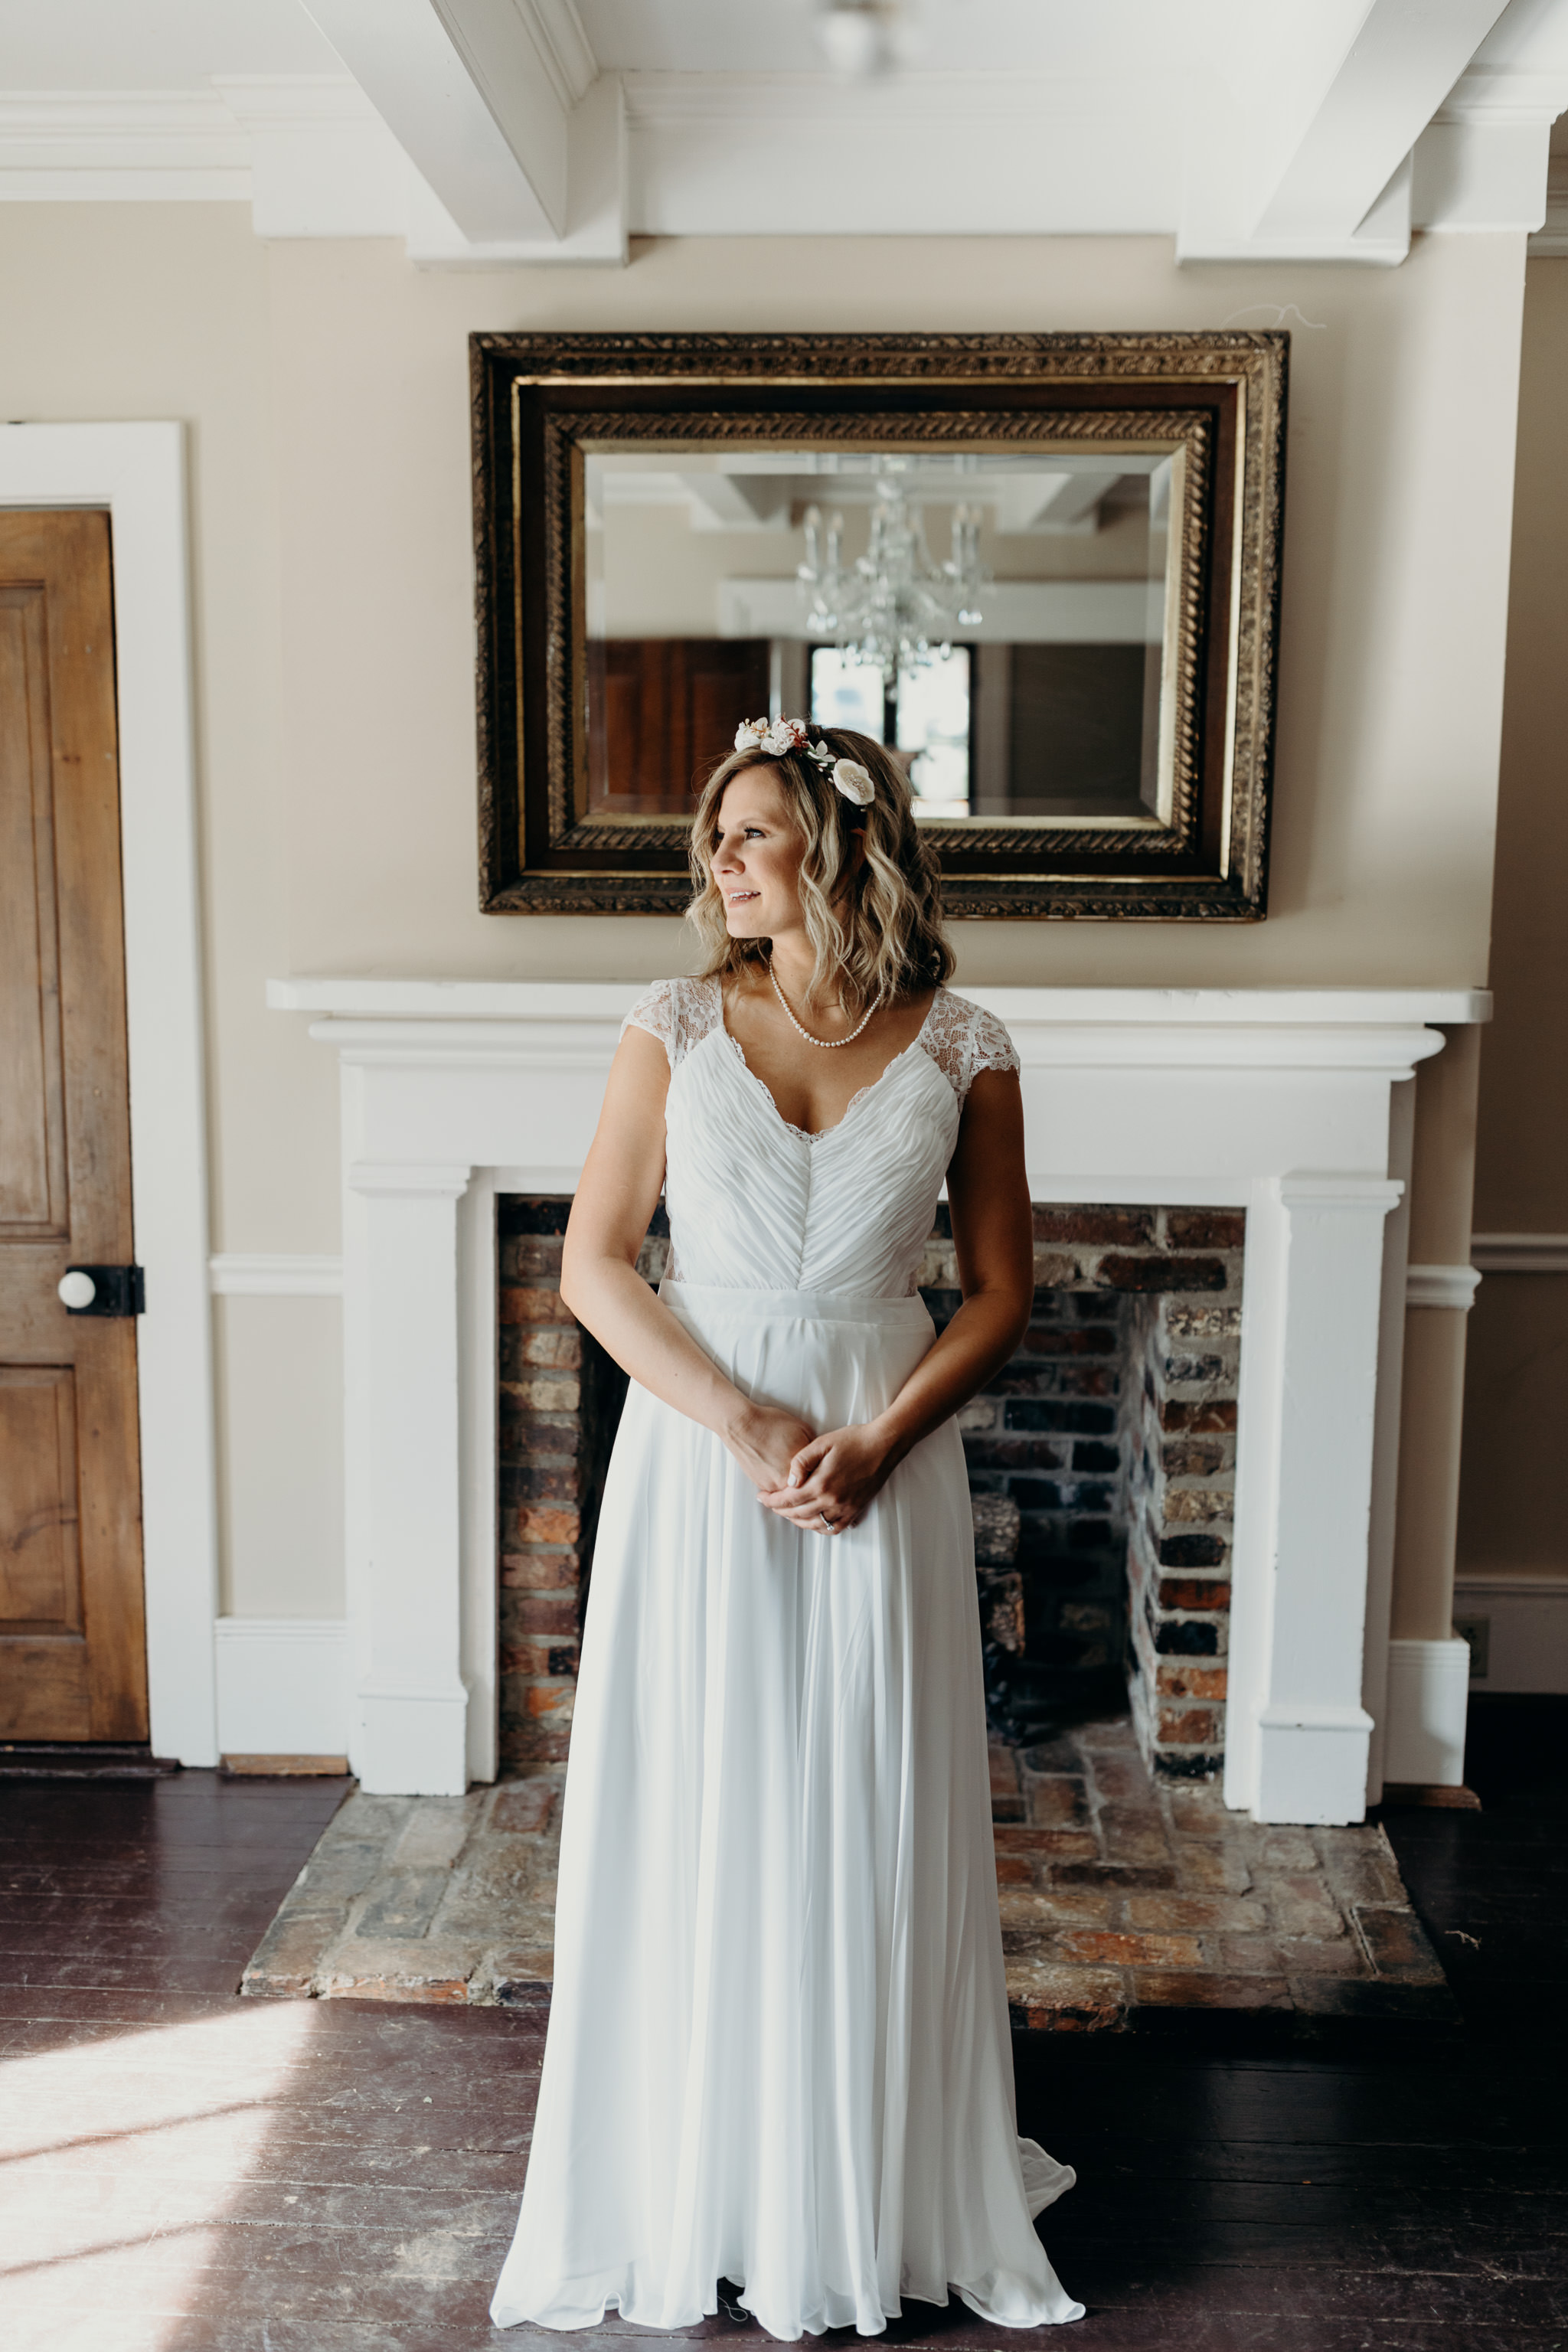 Bridal Portraits at Mansion wedding at The Cool Springs House in Brentwood, Tennessee